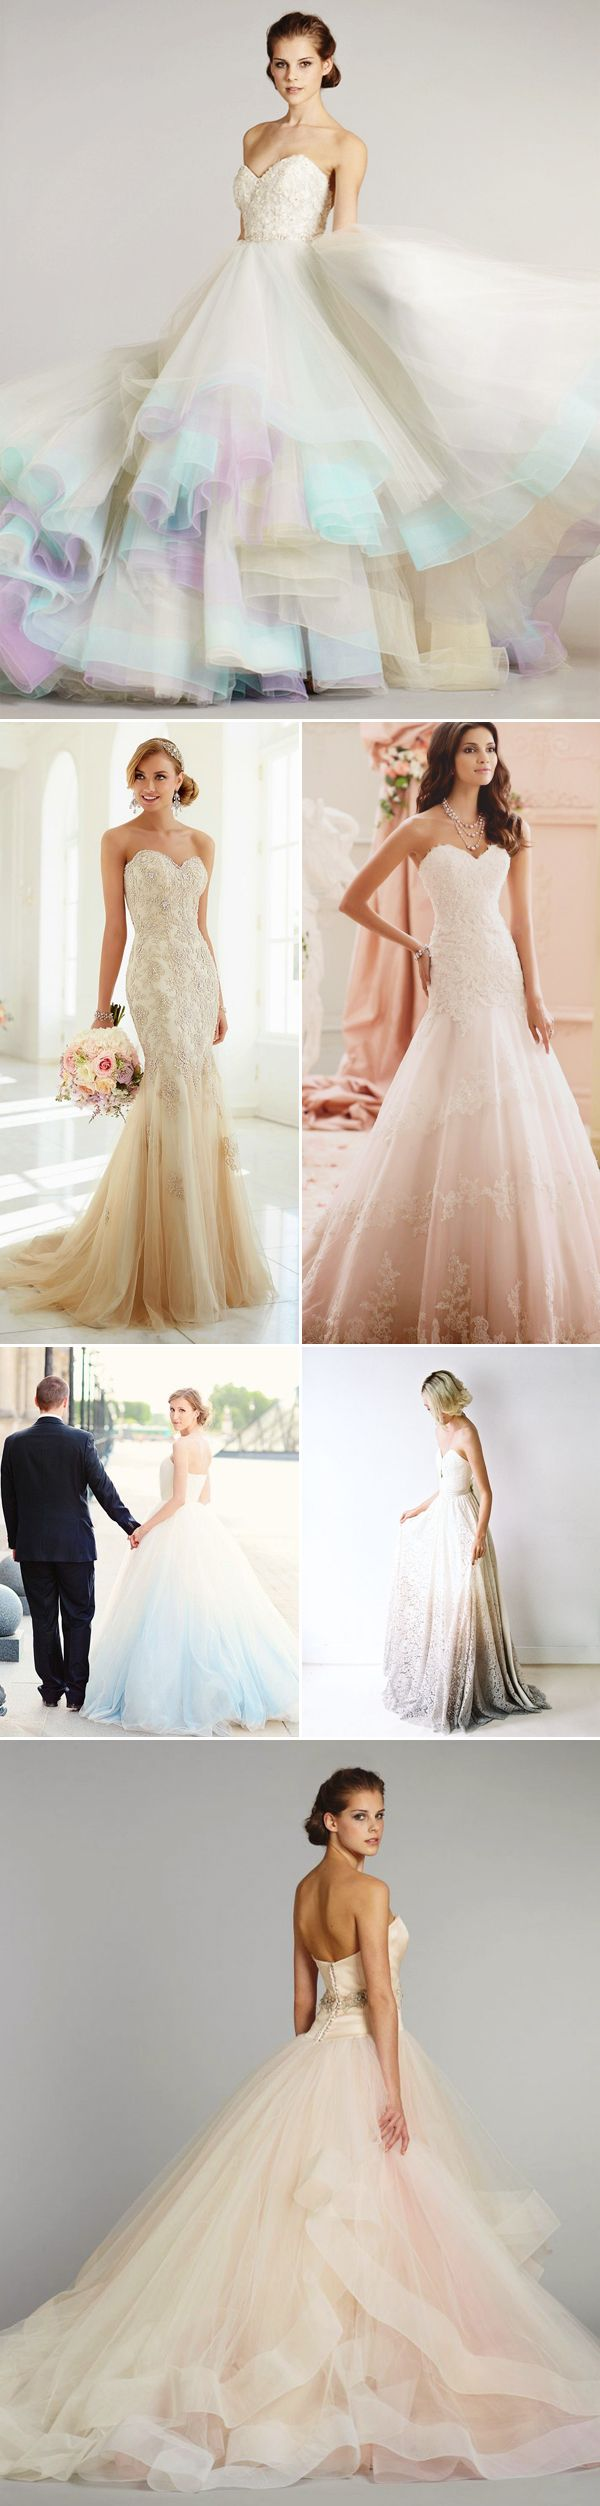 "cf043fd4124 Most Romantic Bridal Trend! 22 ""Barely Colorful"" Wedding dresses with a  Touch of Color! Colors at the bottom"